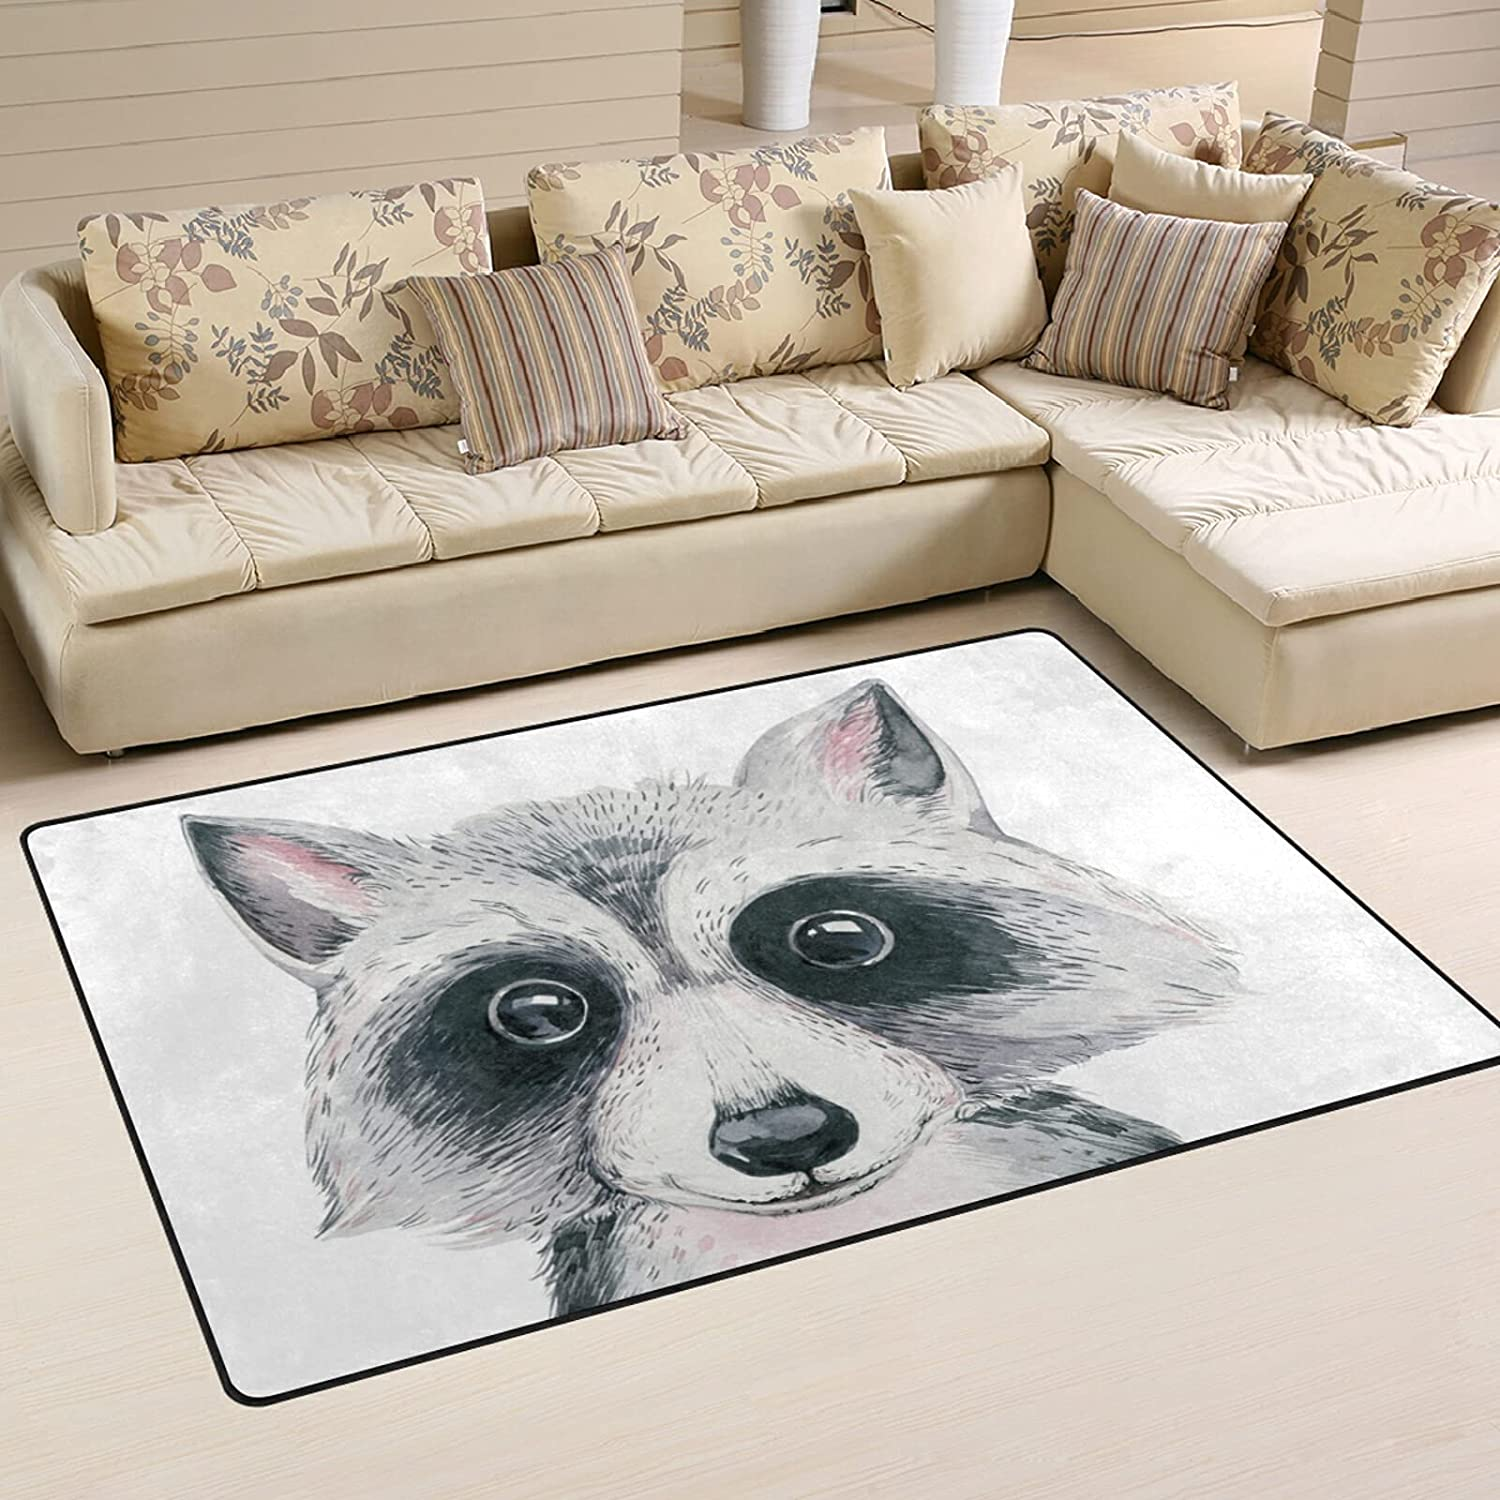 Al sold out. Watercolor Cartoon Raccoon Large Soft Rugs Playmat Bombing free shipping Area Nursery